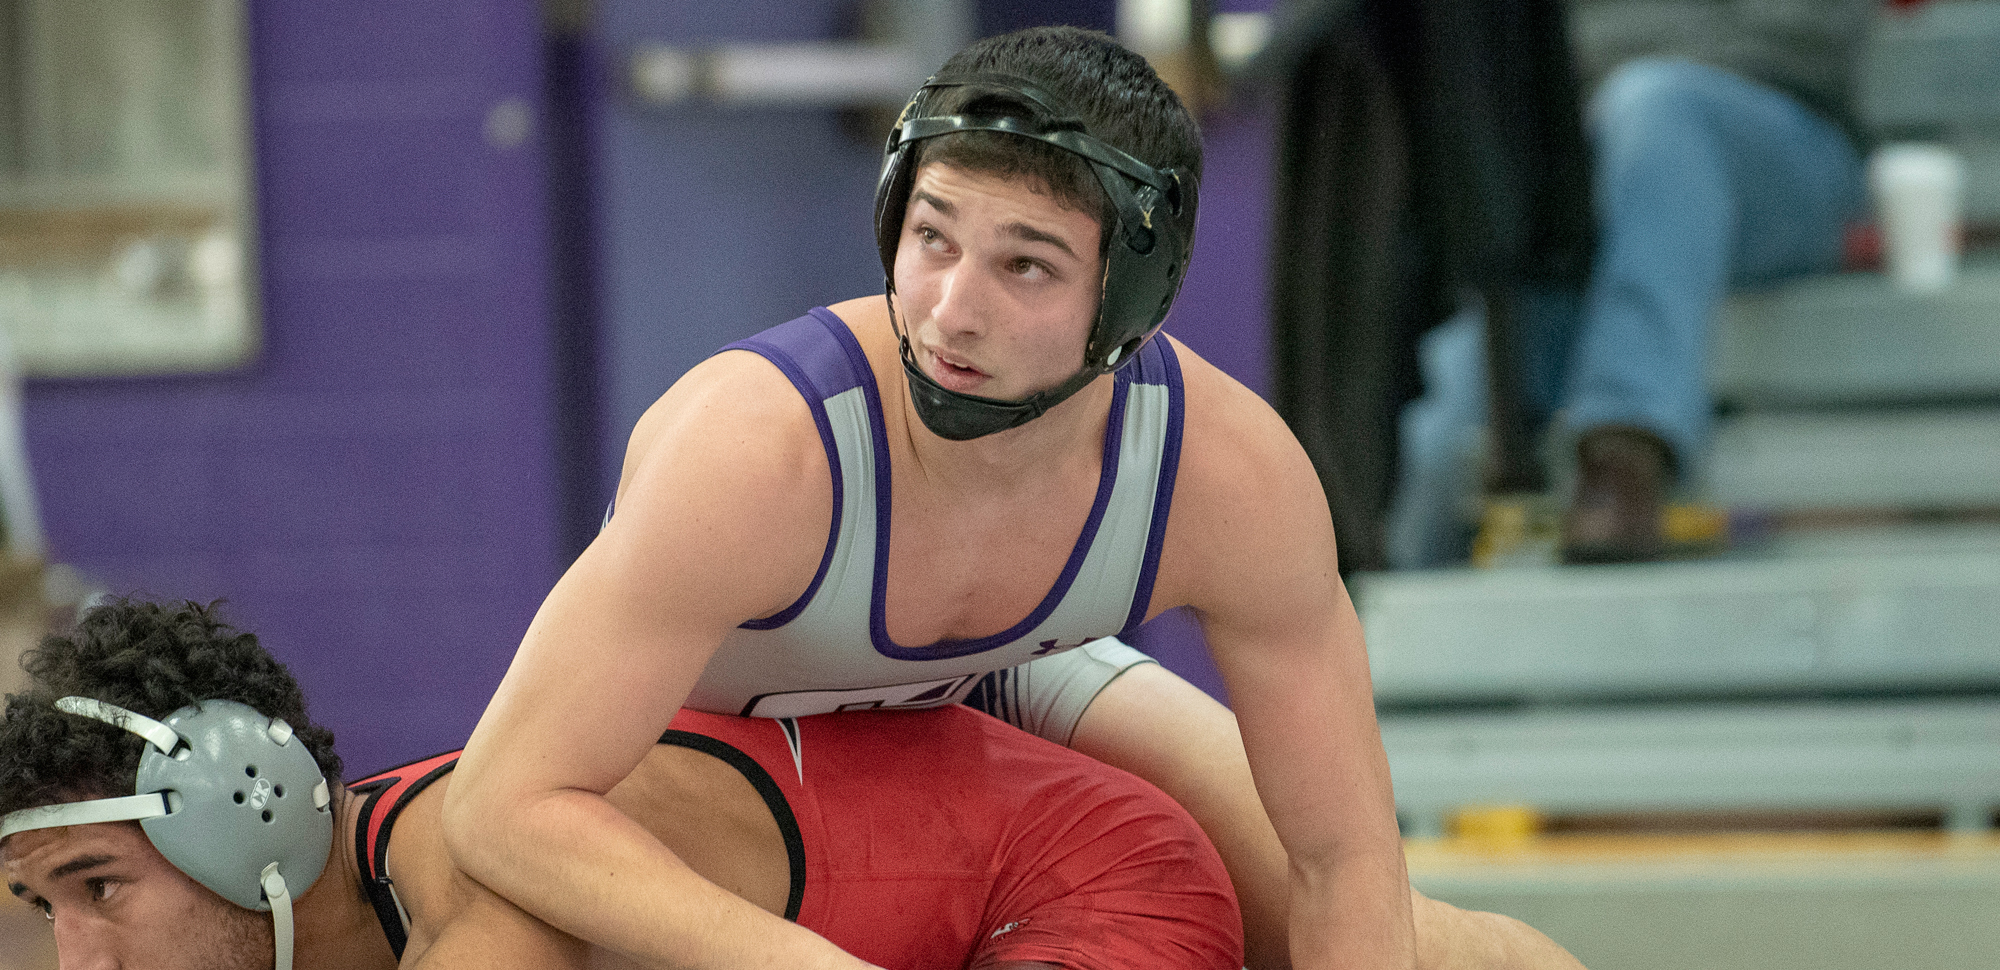 Freshman Anthony Clarizio won for the 16th time on the year via pinfall in a win over King's on Friday night. © Photo by Timothy R. Dougherty / doubleeaglephotography.com